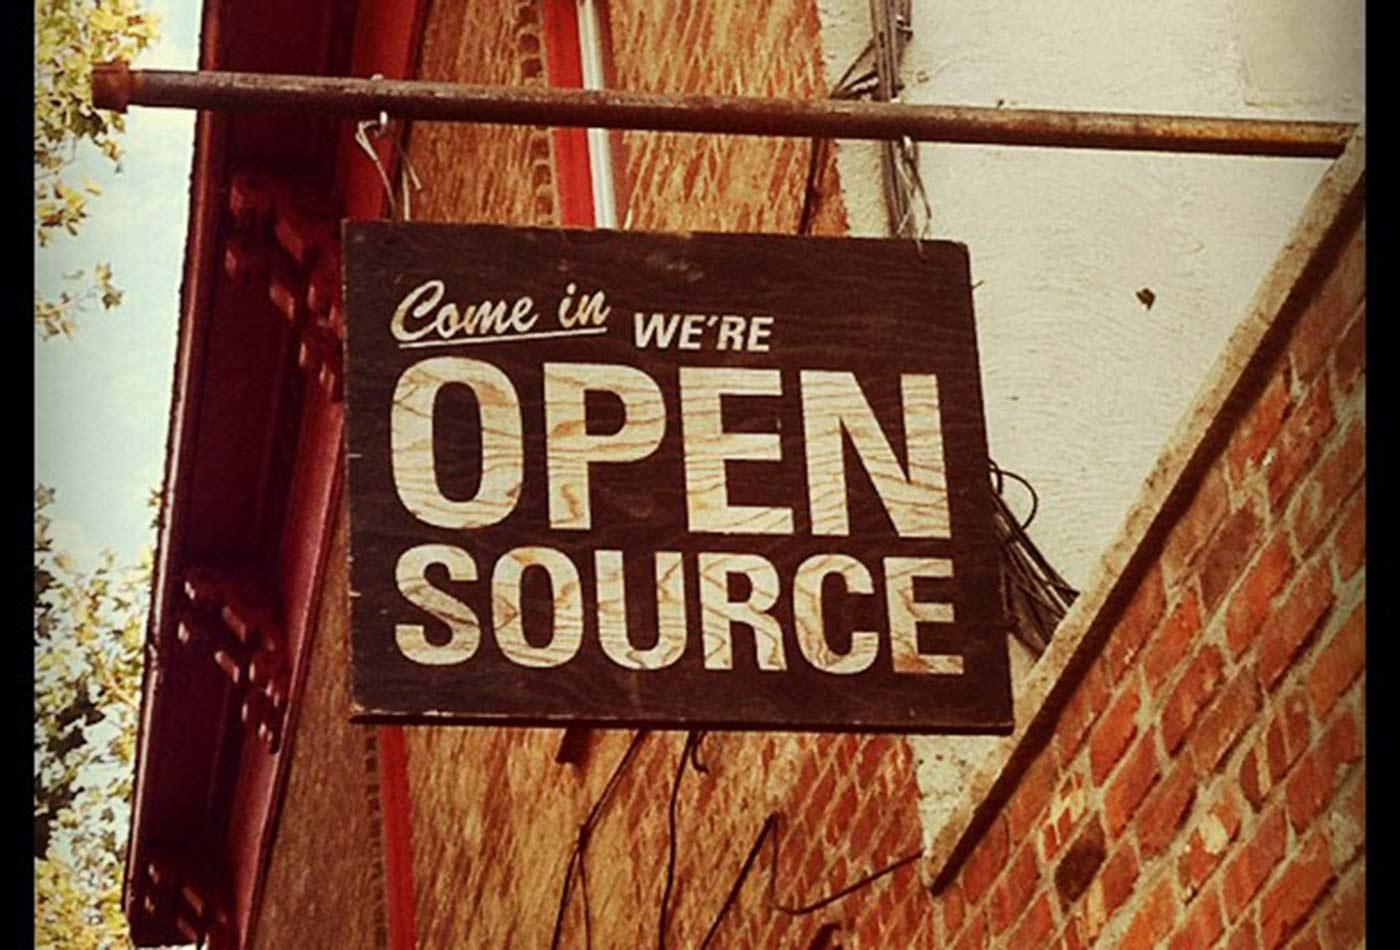 Come in, we're open source.